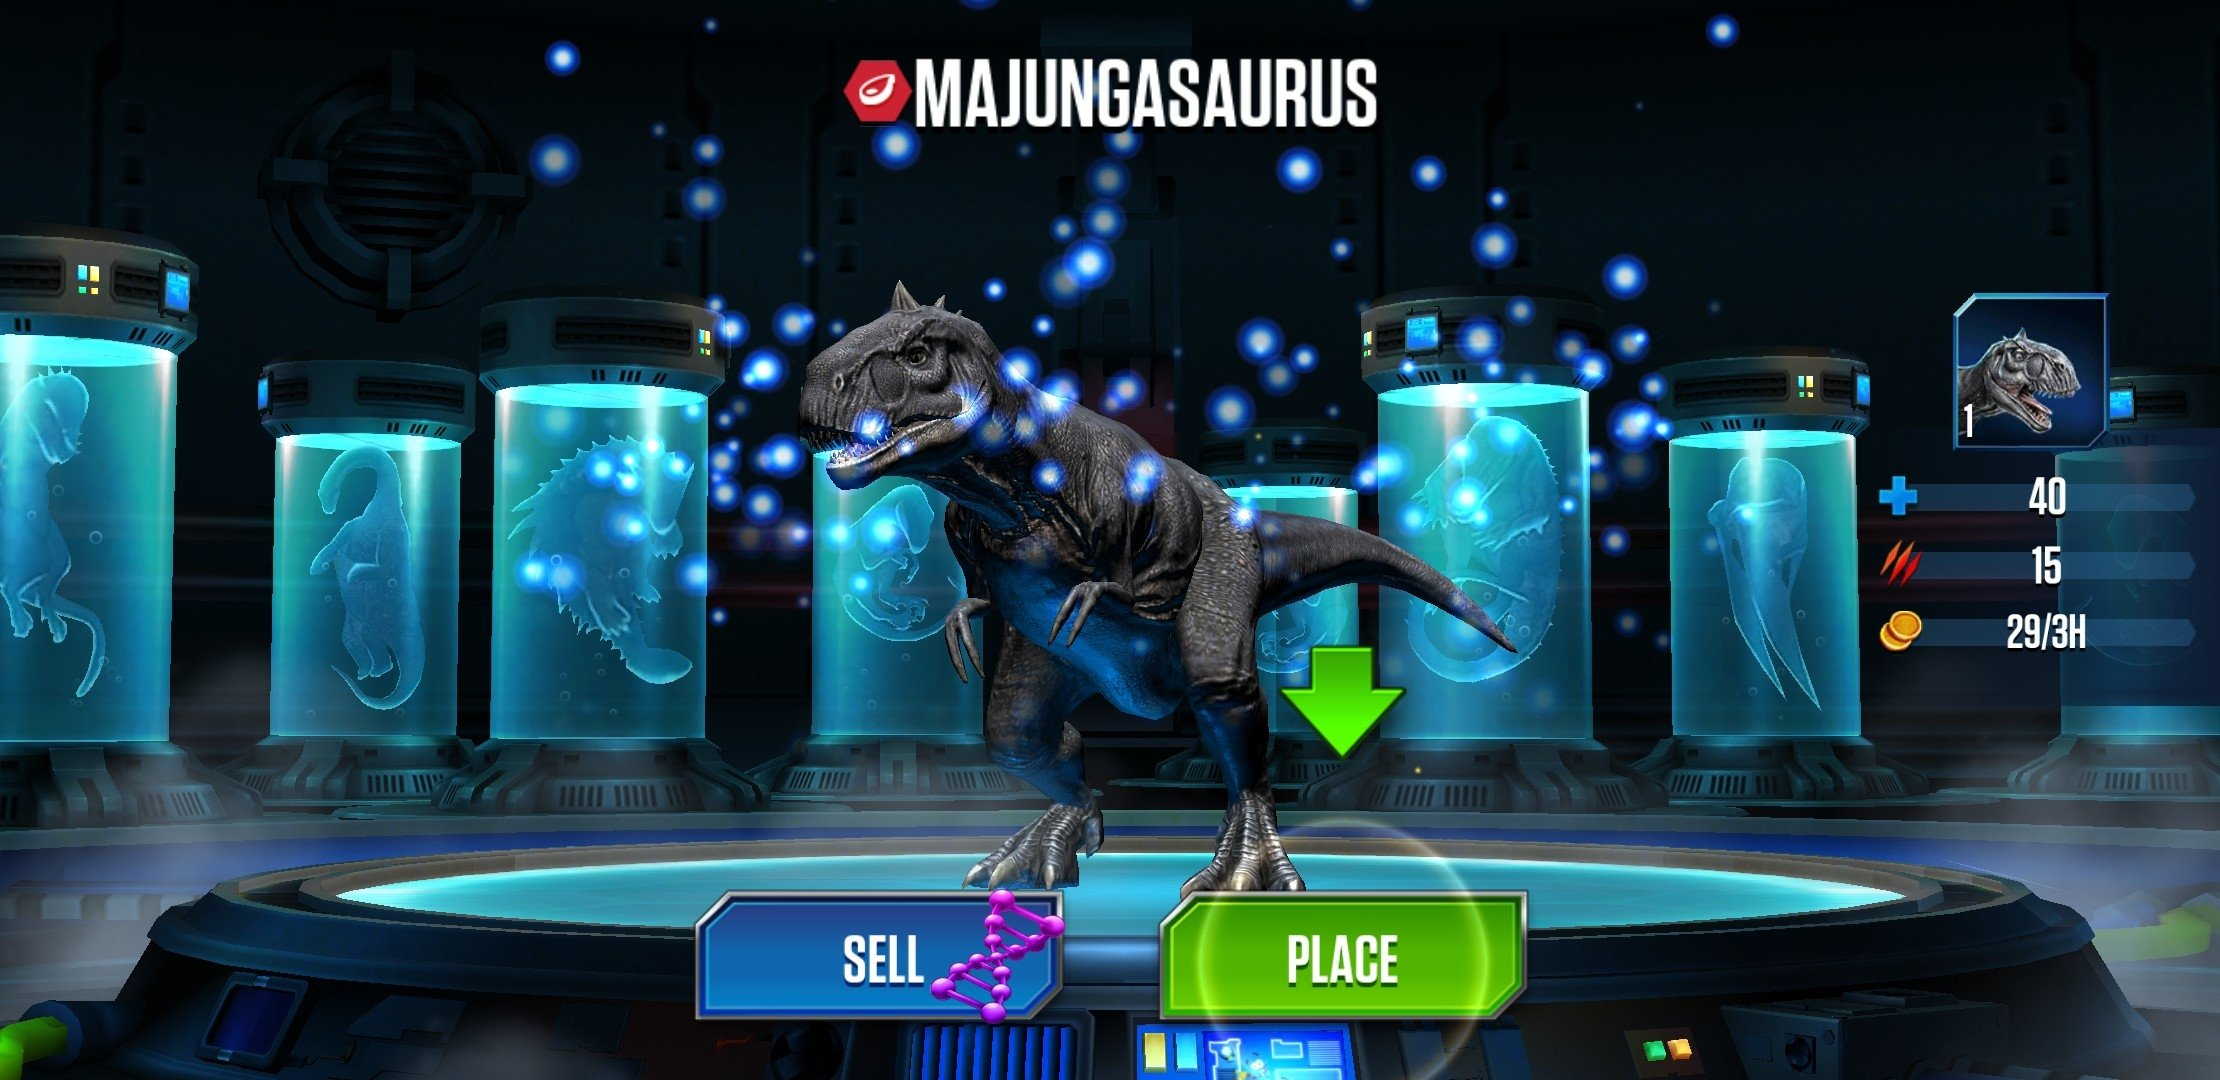 download jurassic world the game 1 22 3 android apk free